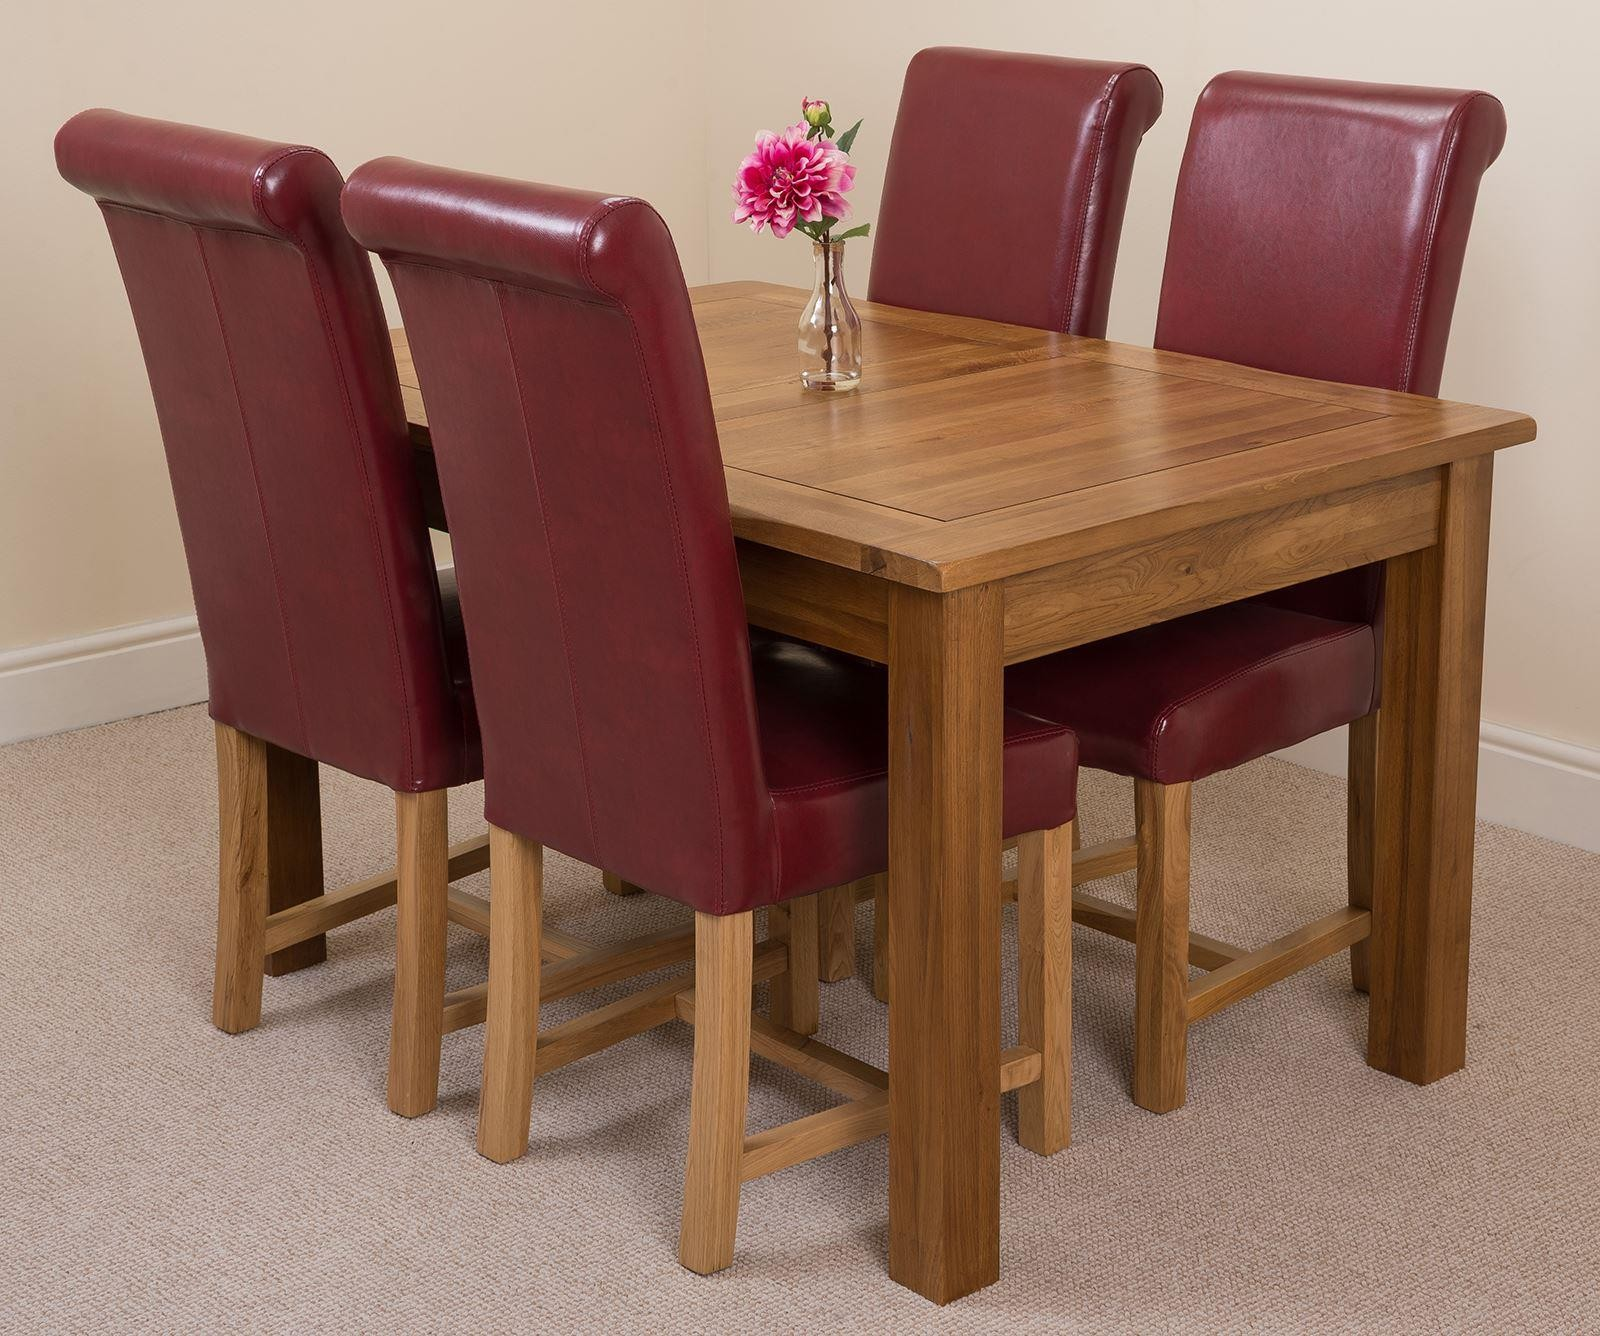 Cotswold Rustic Solid Oak 132cm-198cm Extending Farmhouse Dining Table with 4 Washington Dining Chairs [Burgundy Leather]